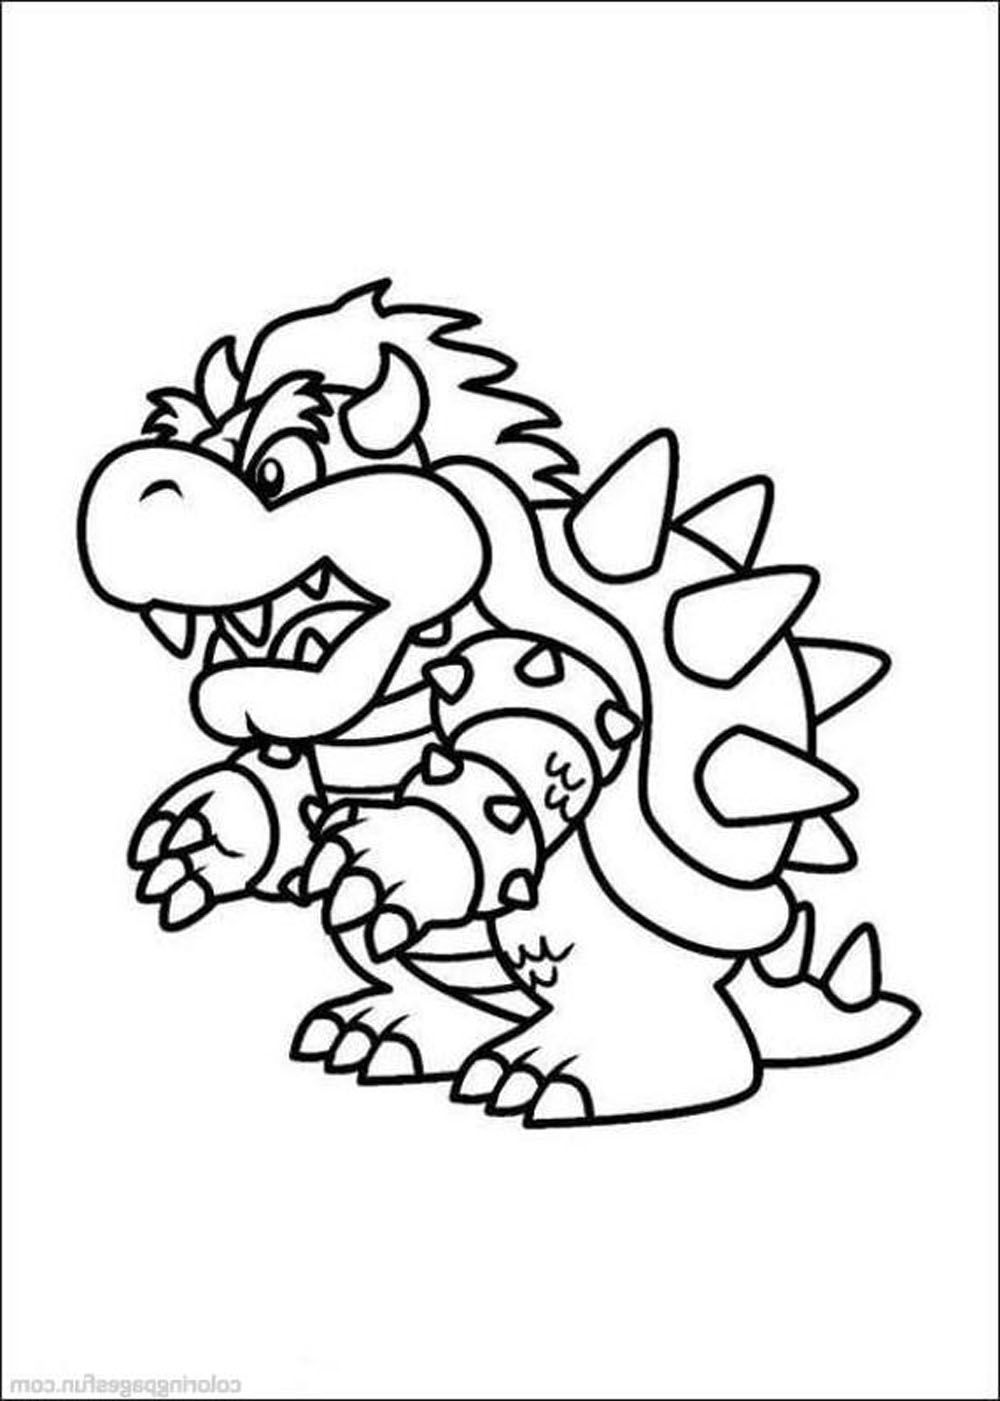 coloring pages super mario | birthdays | pinterest | mario, adult ... - Super Mario Yoshi Coloring Pages